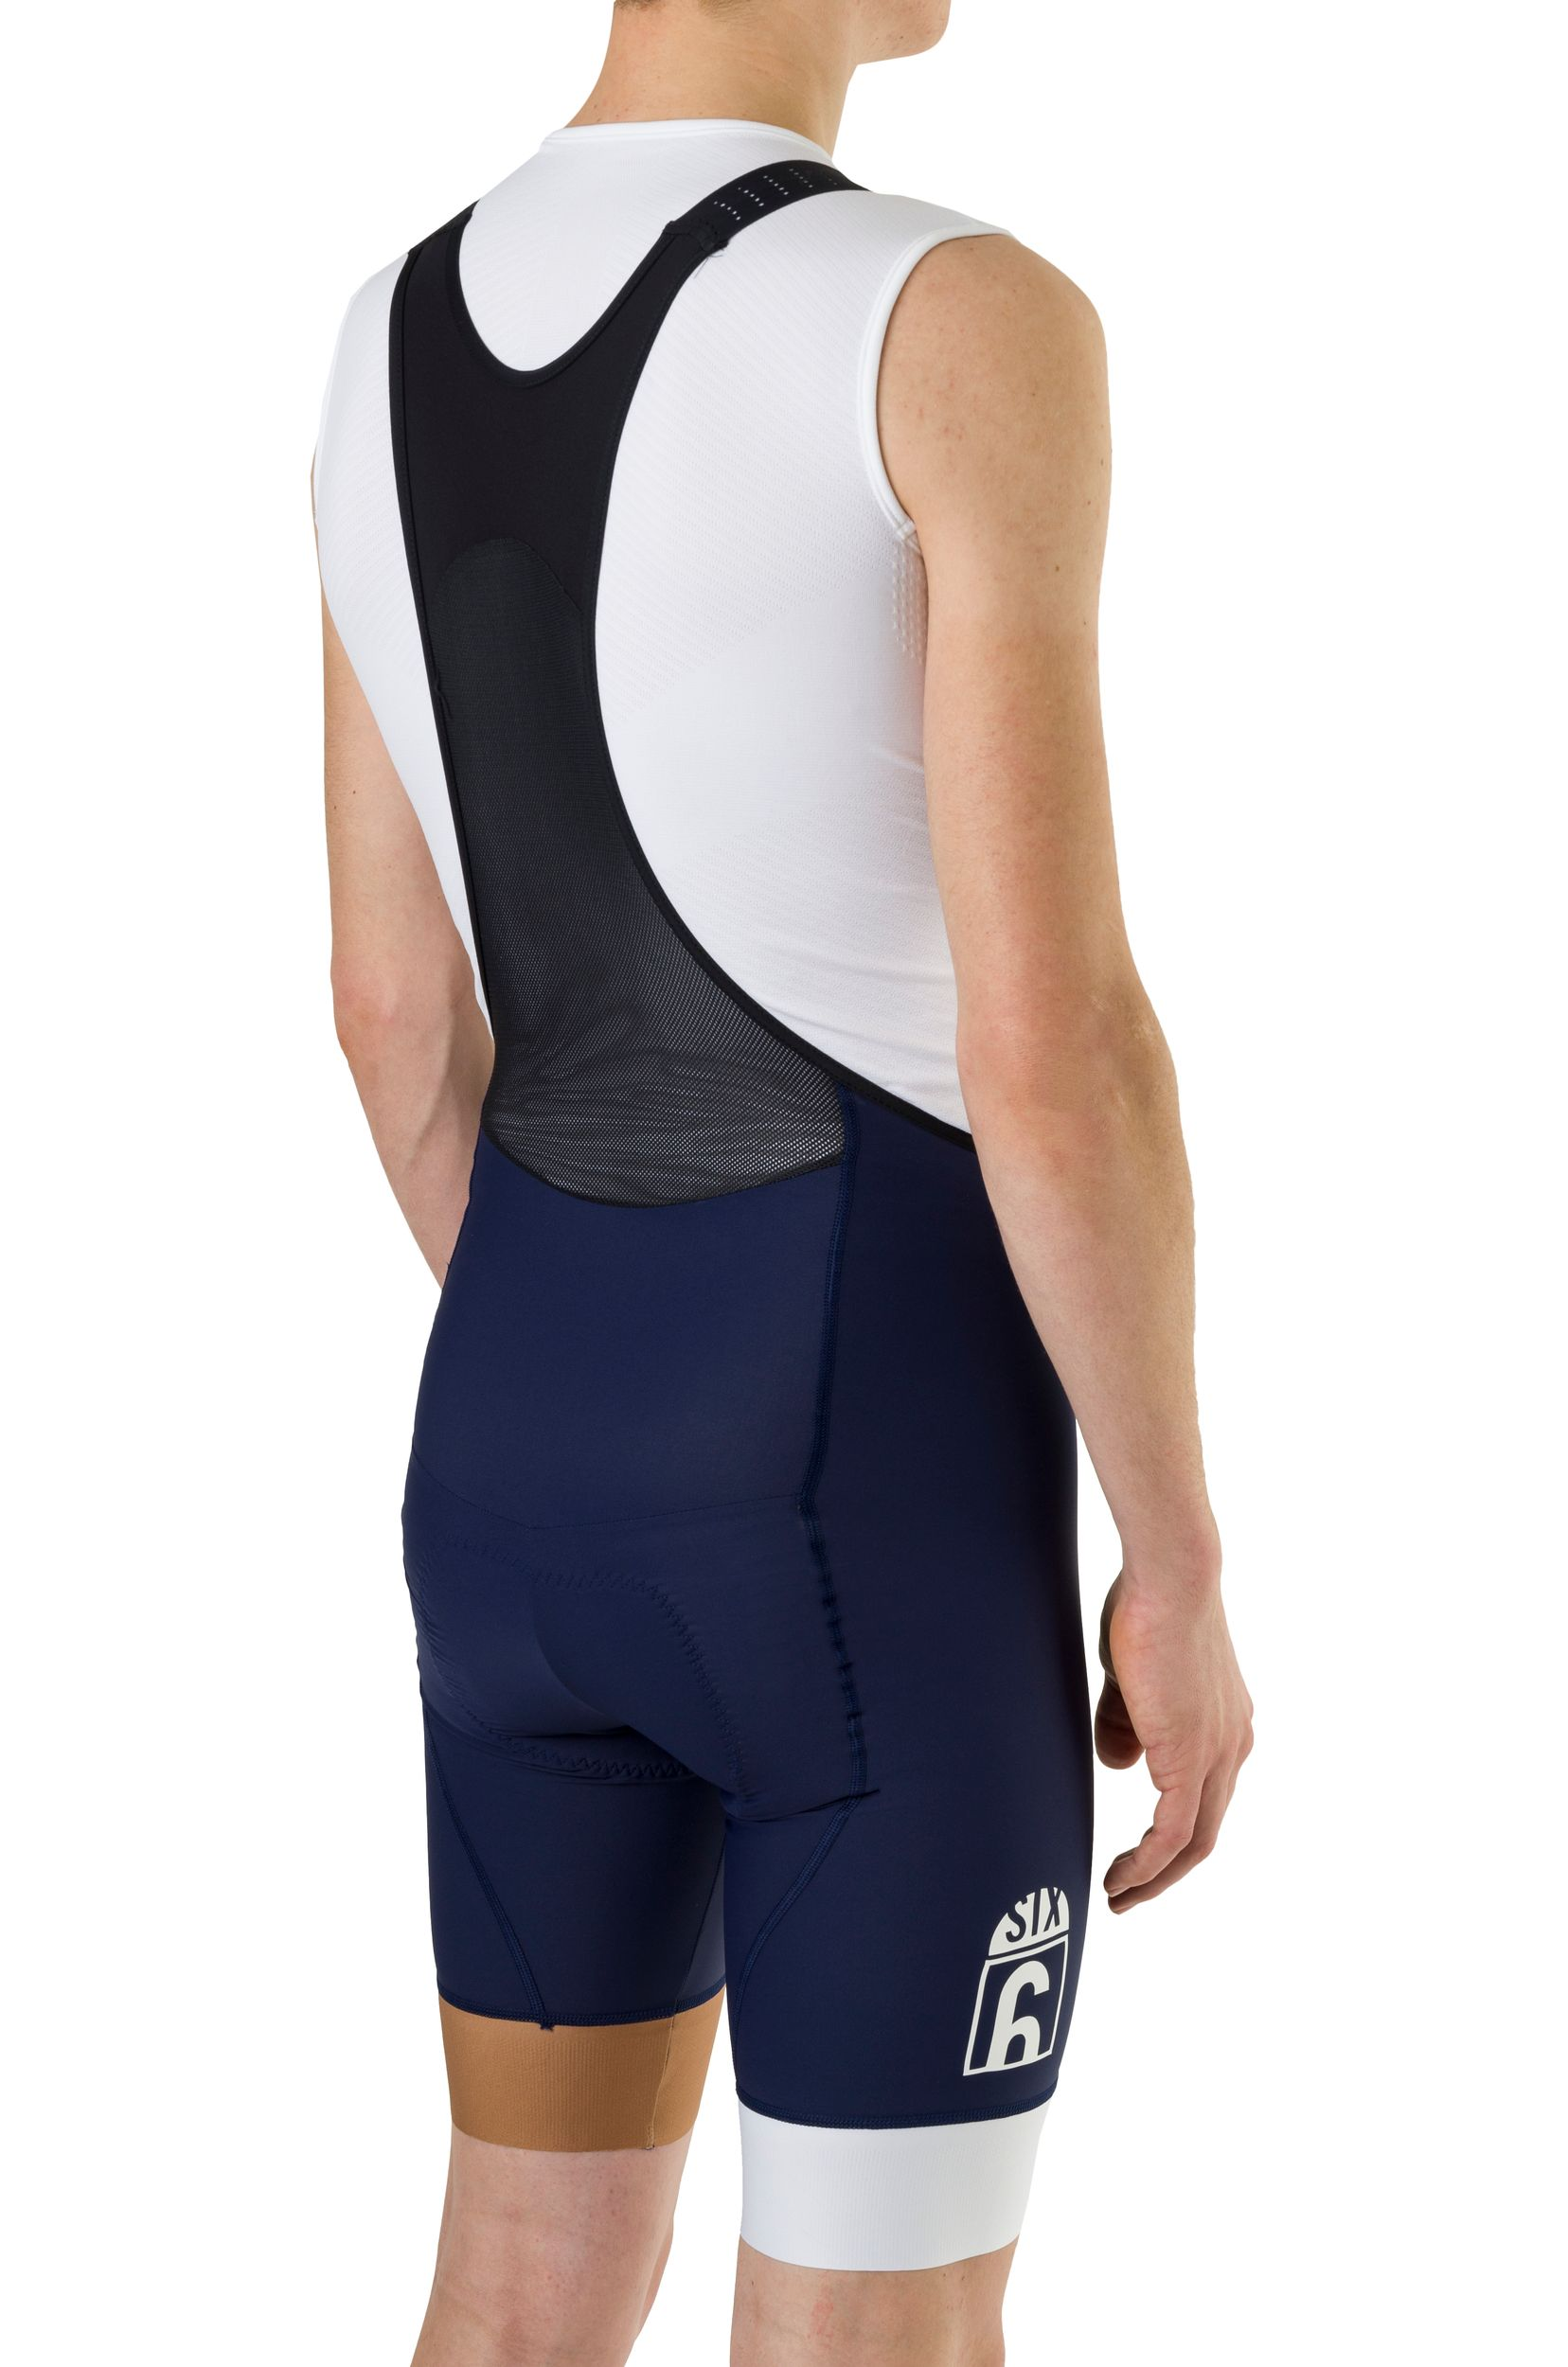 Bibshort Six6 Heren fit example